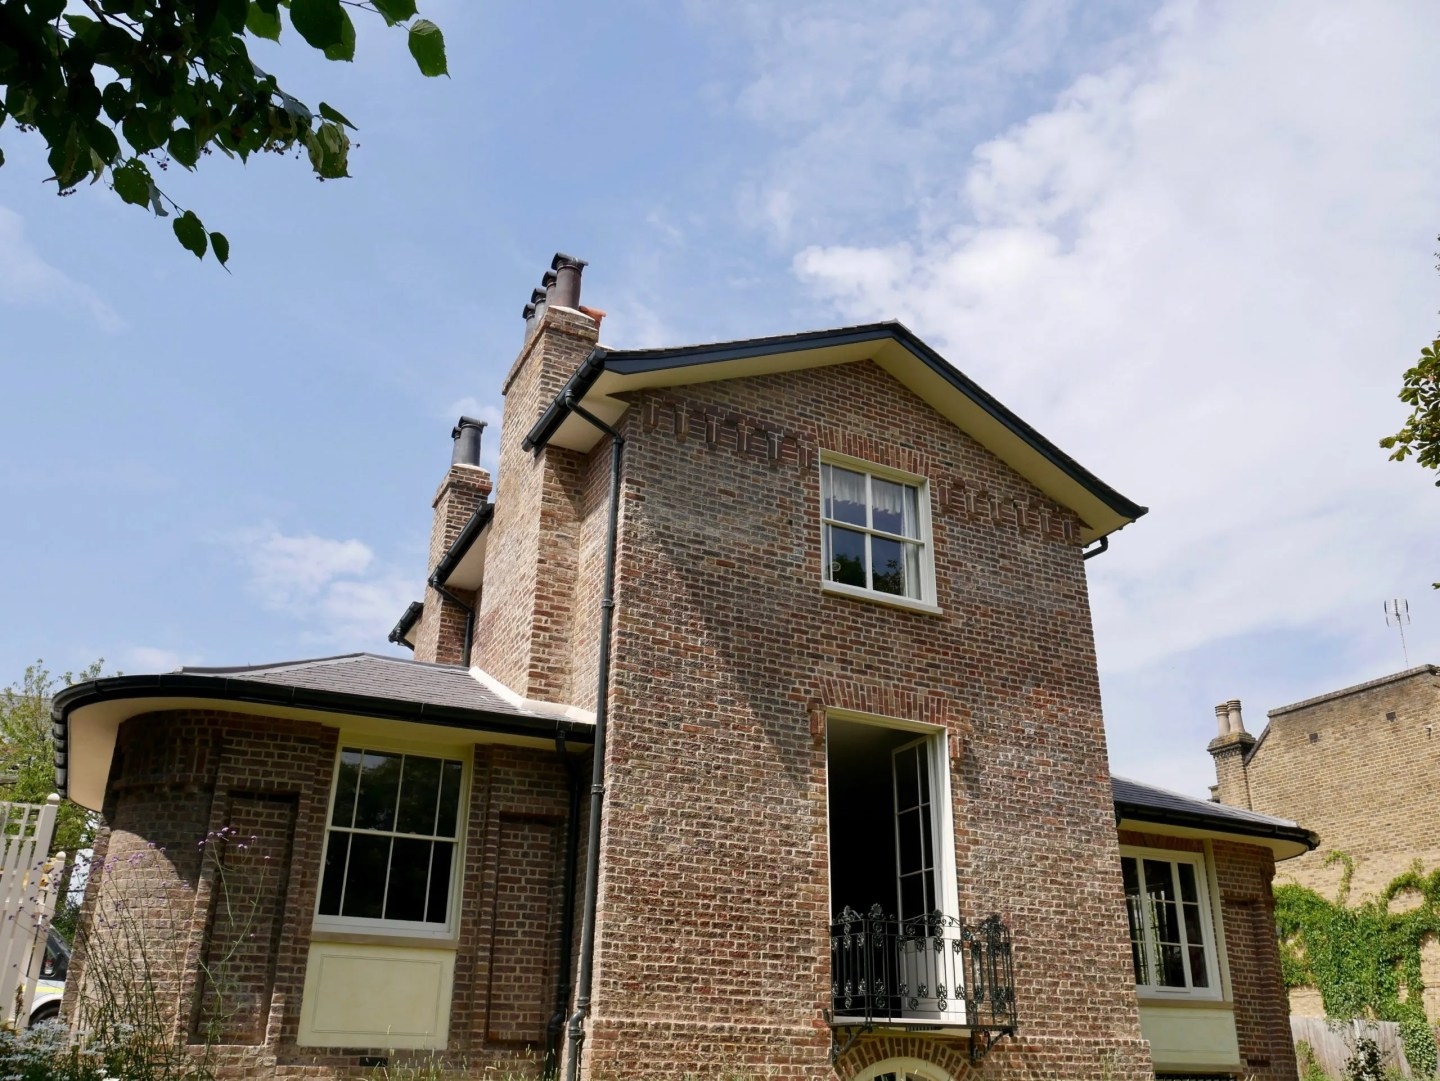 Turners House rear view